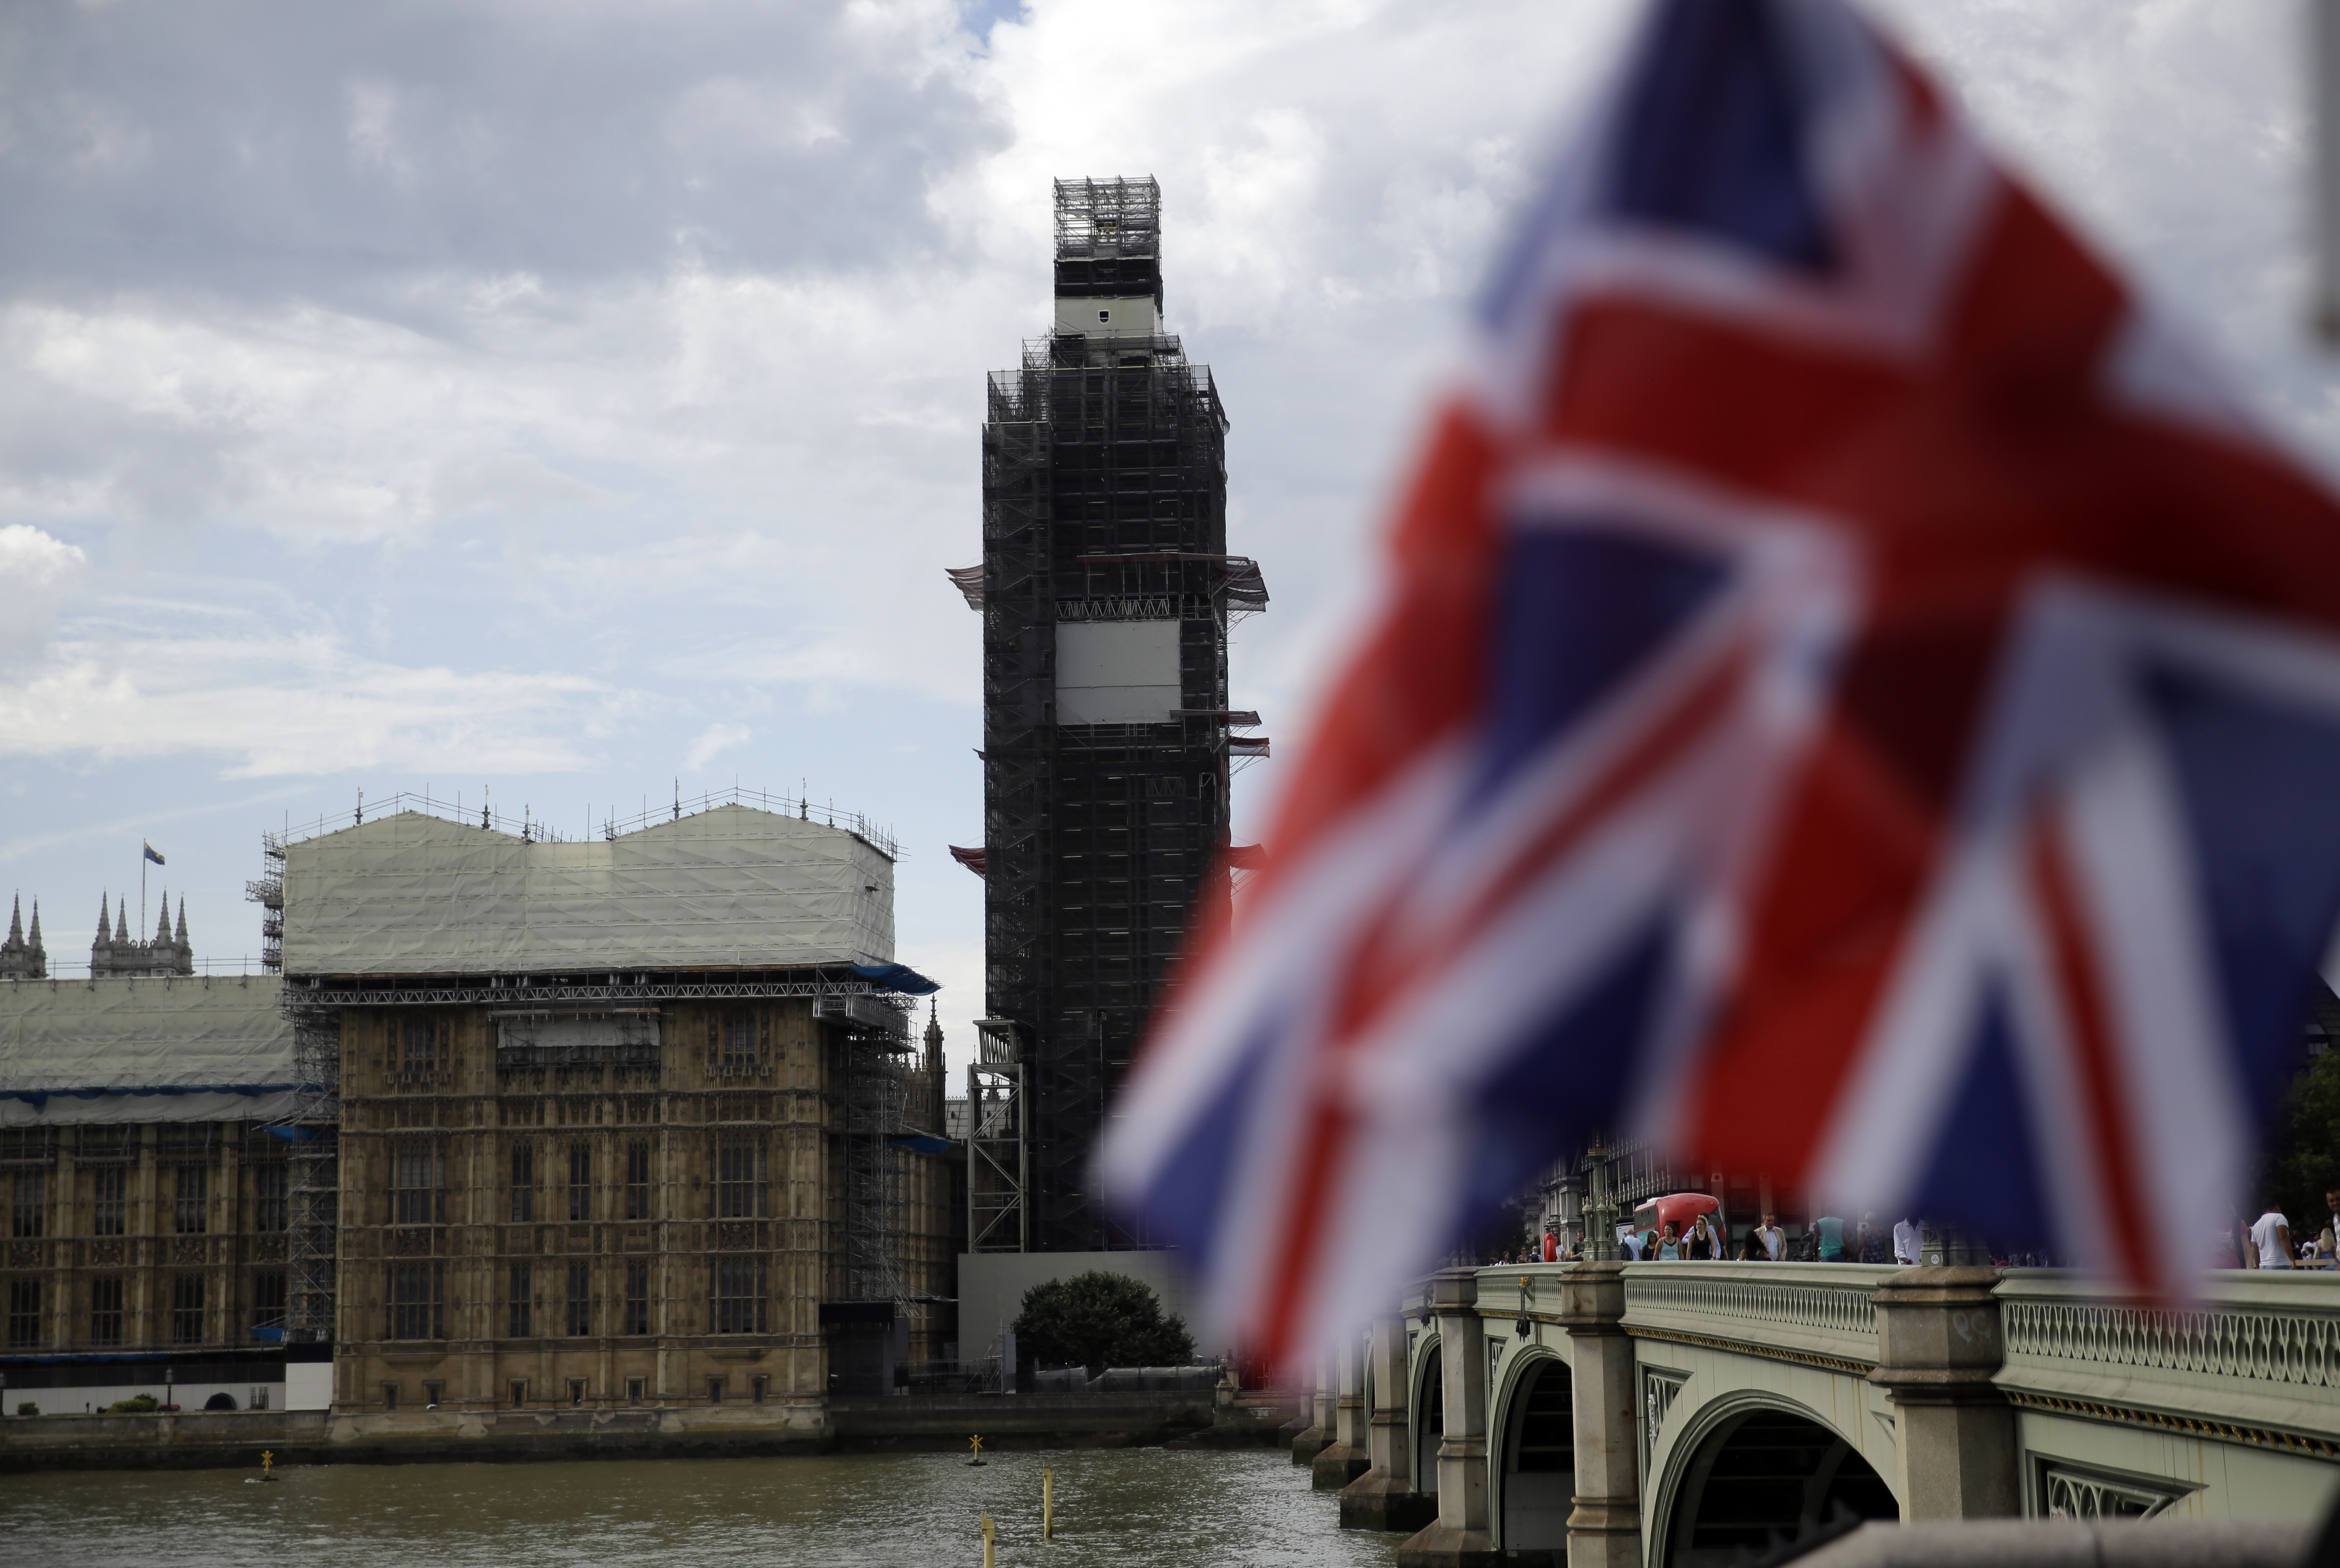 The Houses of Parliament are seem, with a Union Jack flag in the foreground, in central London, Wednesday, Aug. 28, 2019. British Prime Minister Boris Johnson asked Queen Elizabeth II on Wednesday to suspend Parliament, throwing down the gauntlet to his critics and causing outrage among opposition leaders who will have even less time to thwart a no-deal Brexit. (AP Photo/Matt Dunham)